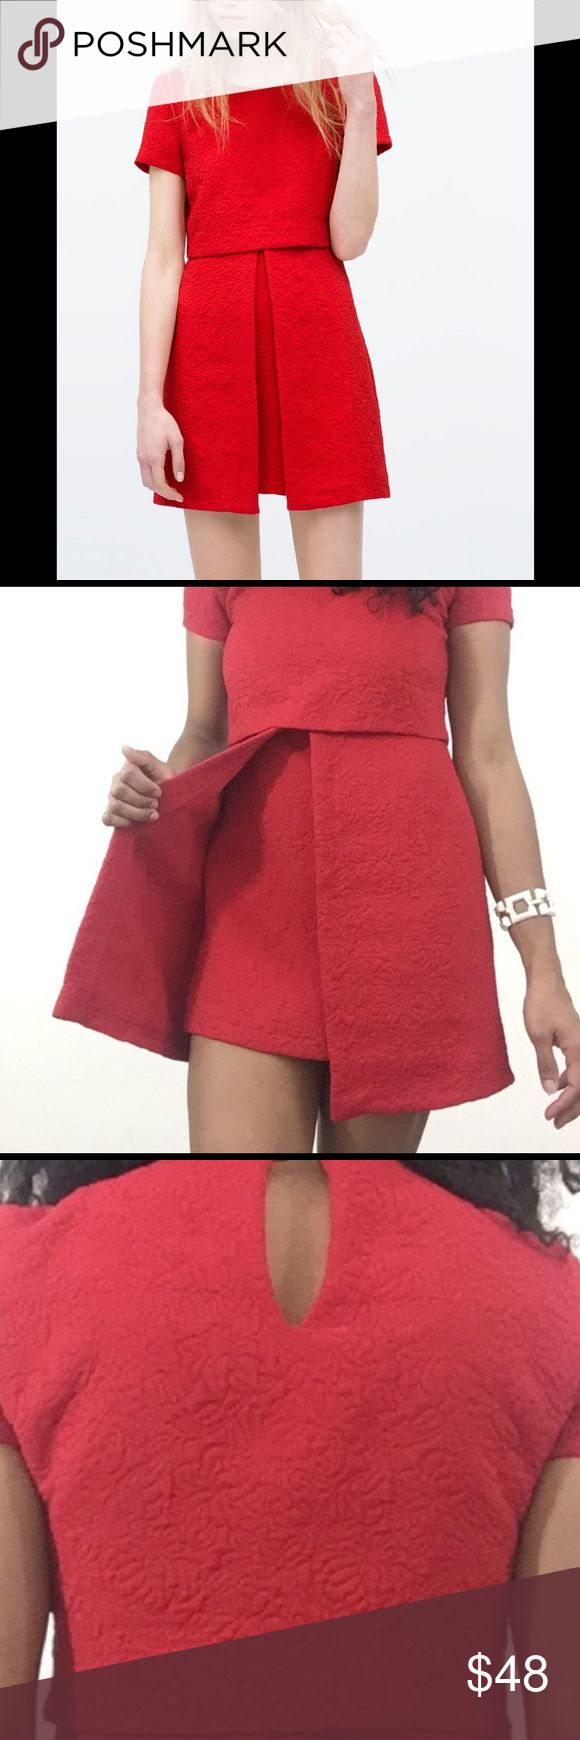 """ZARA DRESS Oh so cute red ZARA dress with cap sleeves and one button, peek-a-boo and zip back closure. 31"""" from shoulder to hem. In excellent condition. Dress looks exactly like the first picture (vibrant red), which is adorable!  Zara Dresses"""